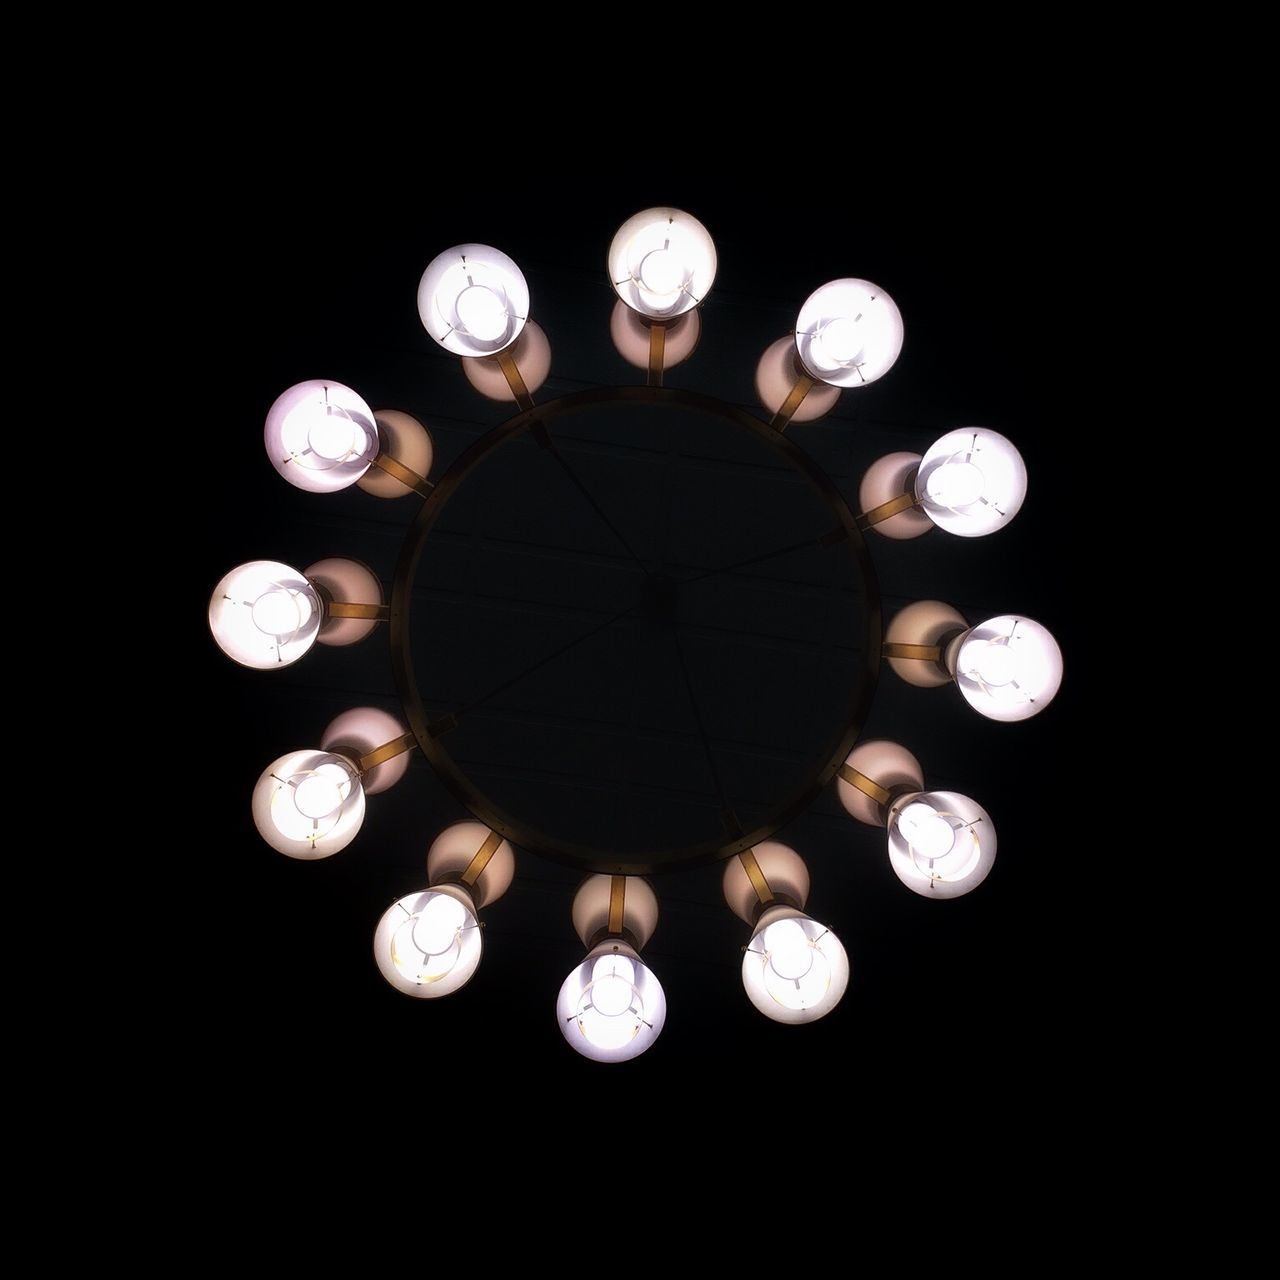 Directly Below Shot Of Illuminated Light Bulbs Against Black Background